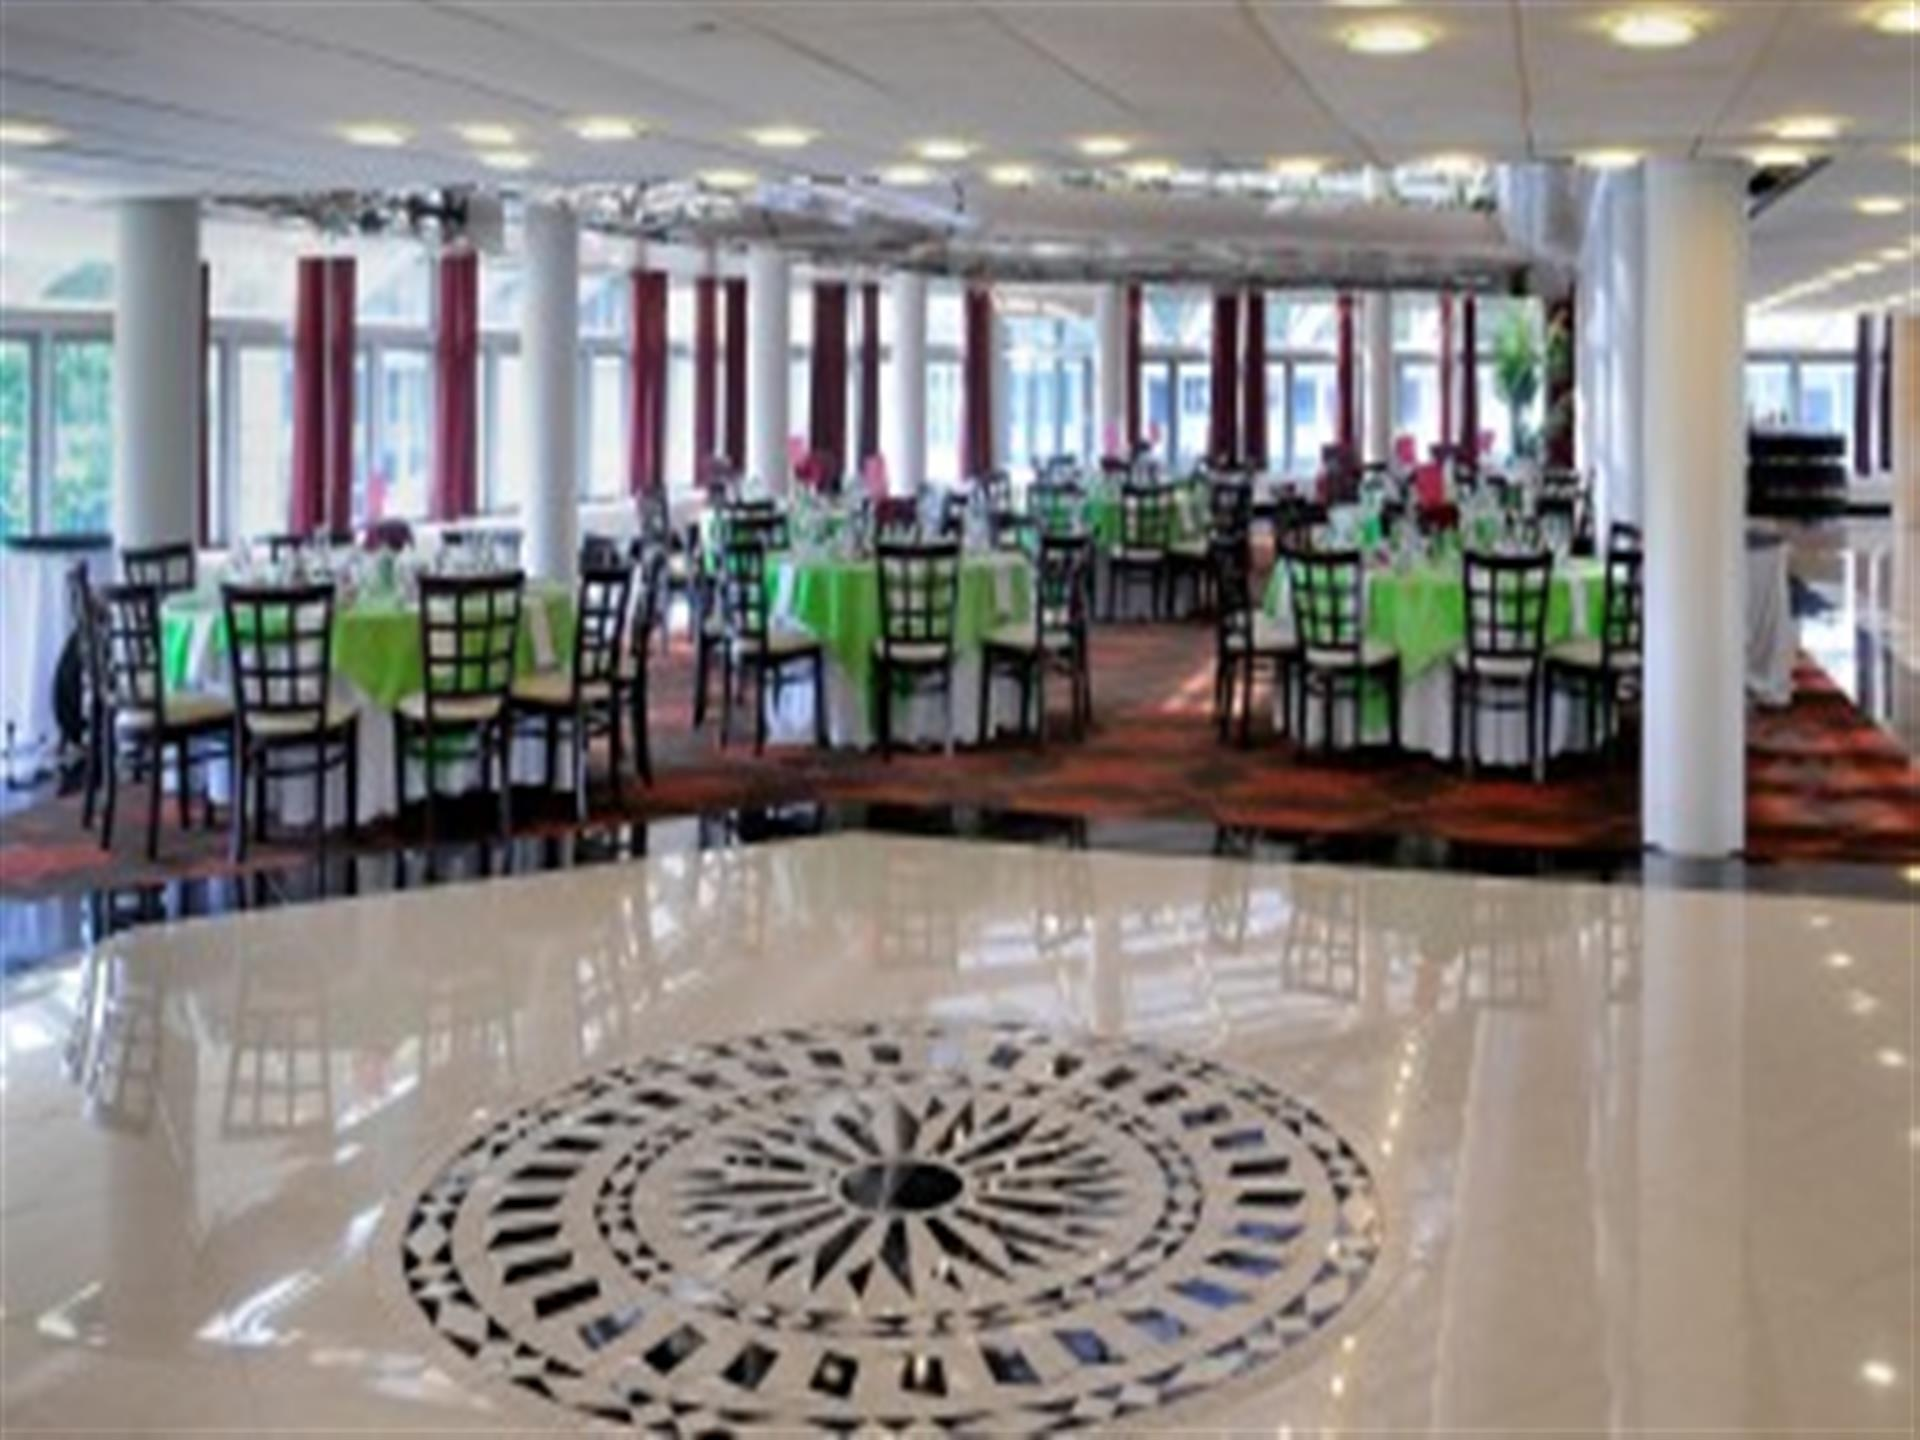 Dining hall with green-clothed tables and white trim. White placesettings. Brown and white chairs in front of windows. White tile floor in foreground.